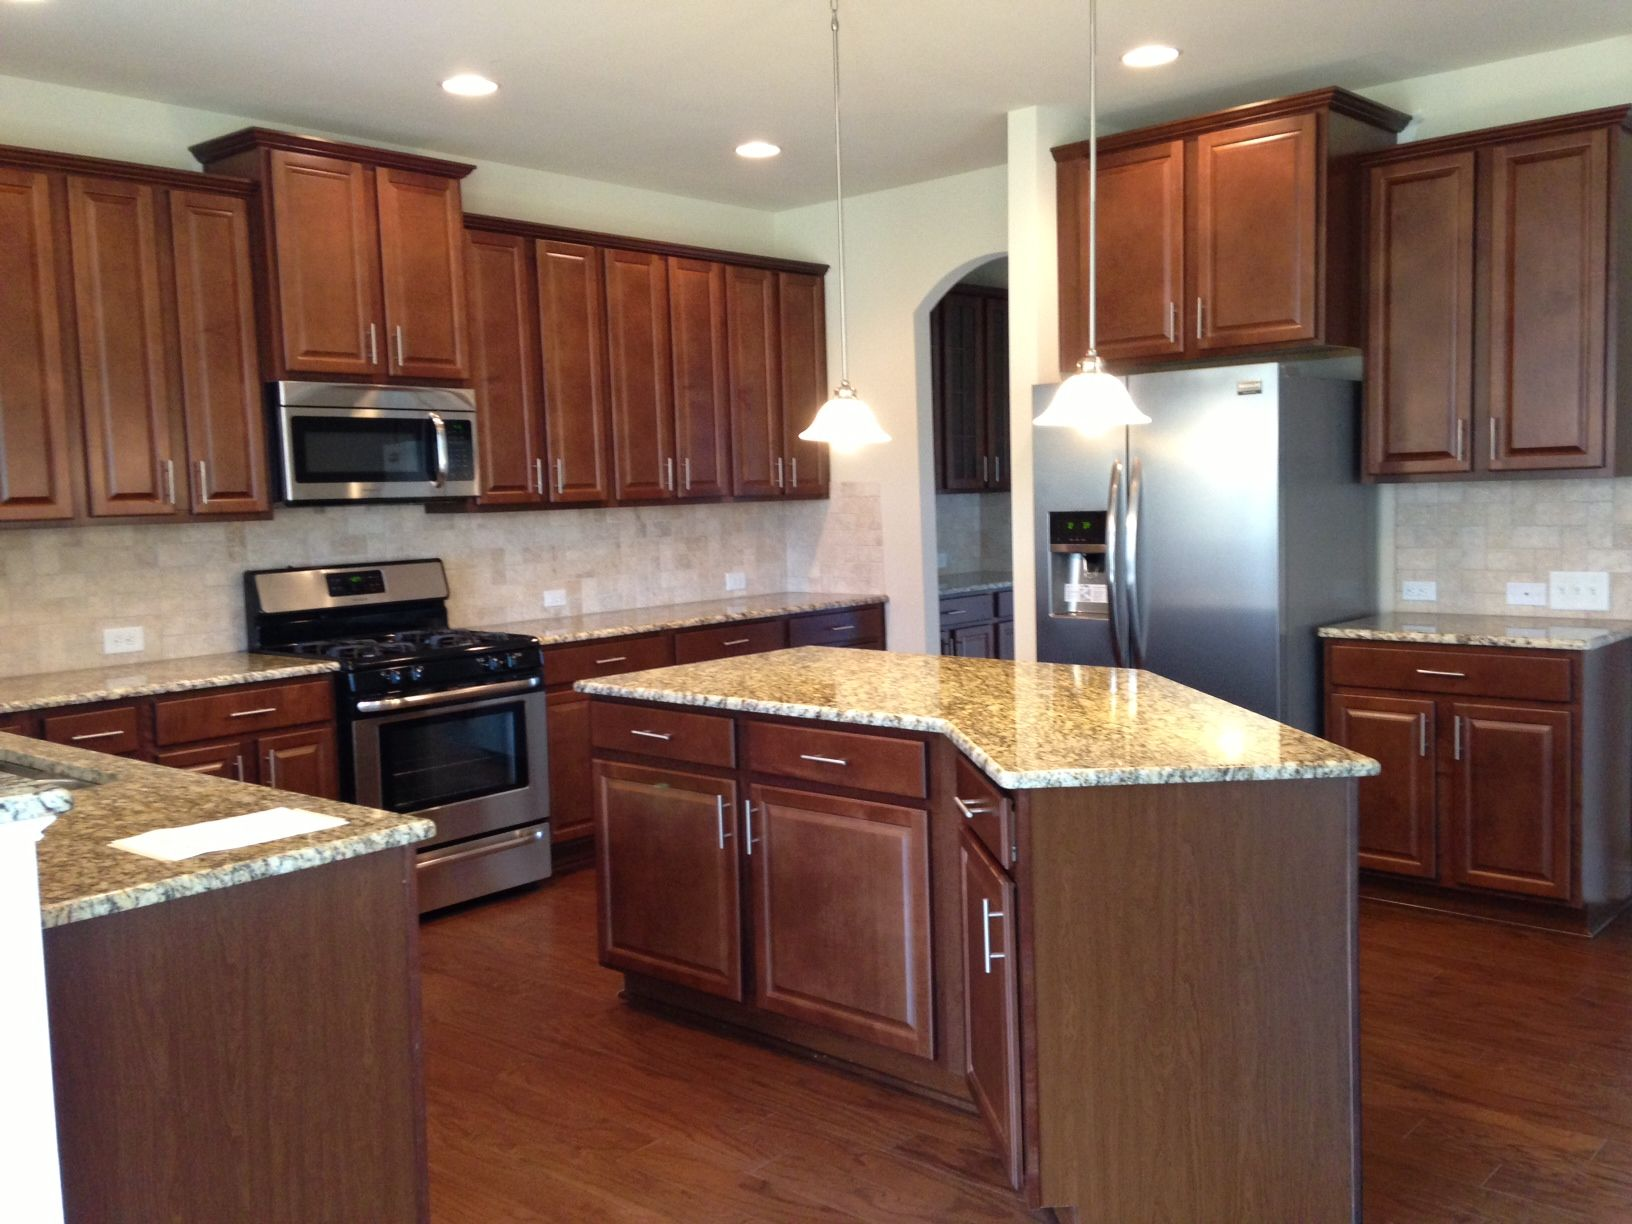 Kitchen Cabinets With Legs Commercial Restaurant Mats Wakefield Timberlake Andover Maple Nutmeg